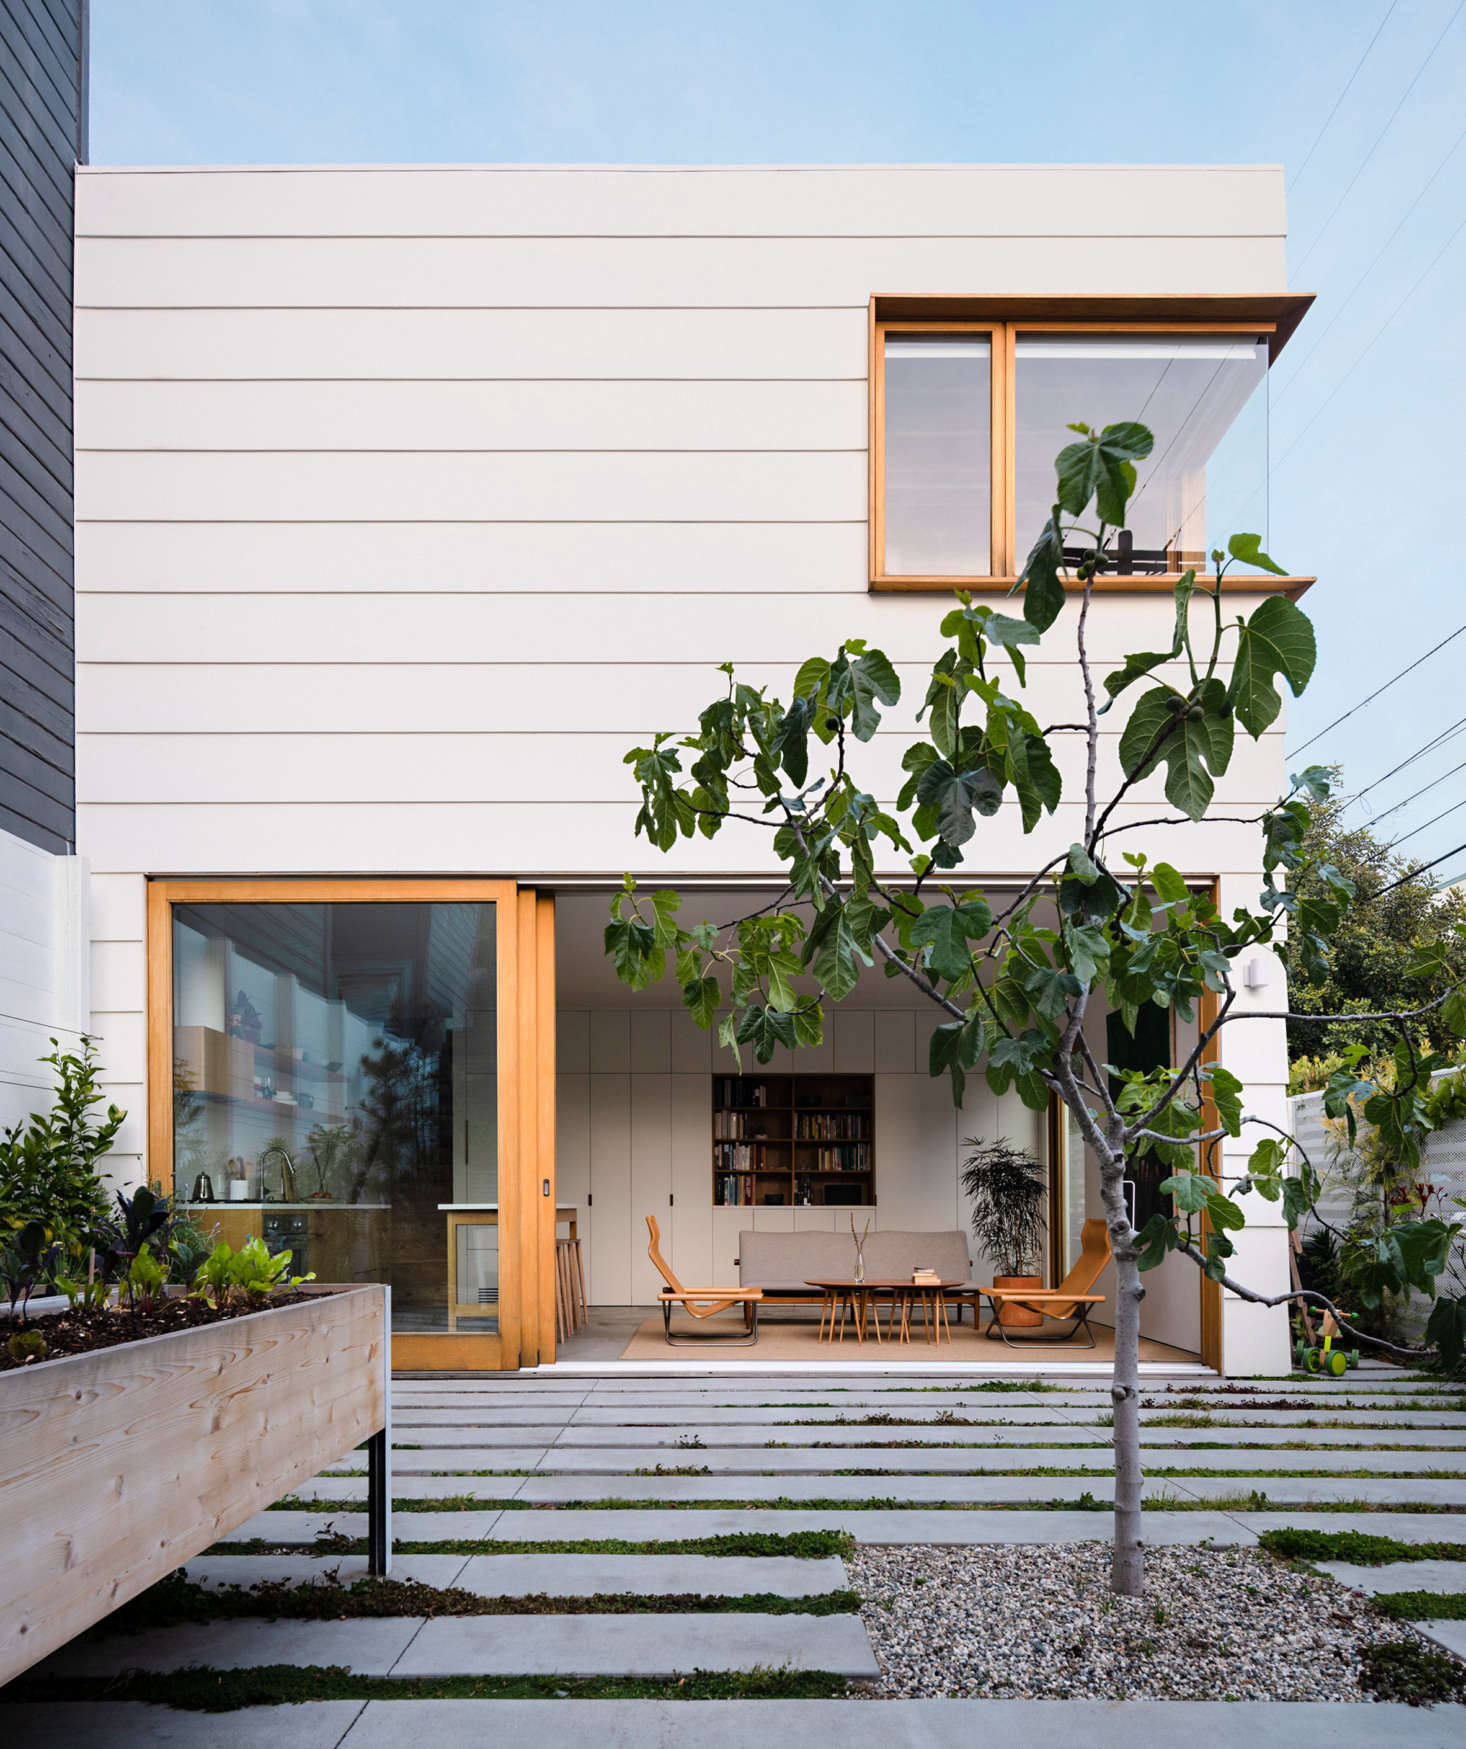 The new two-story structure, designed with its own open living room and kitchen. The exposed concrete flooring continues into the garden with a series of linear pavers, interspersed with rows of sedum. A fig tree grows in the center of the courtyard.